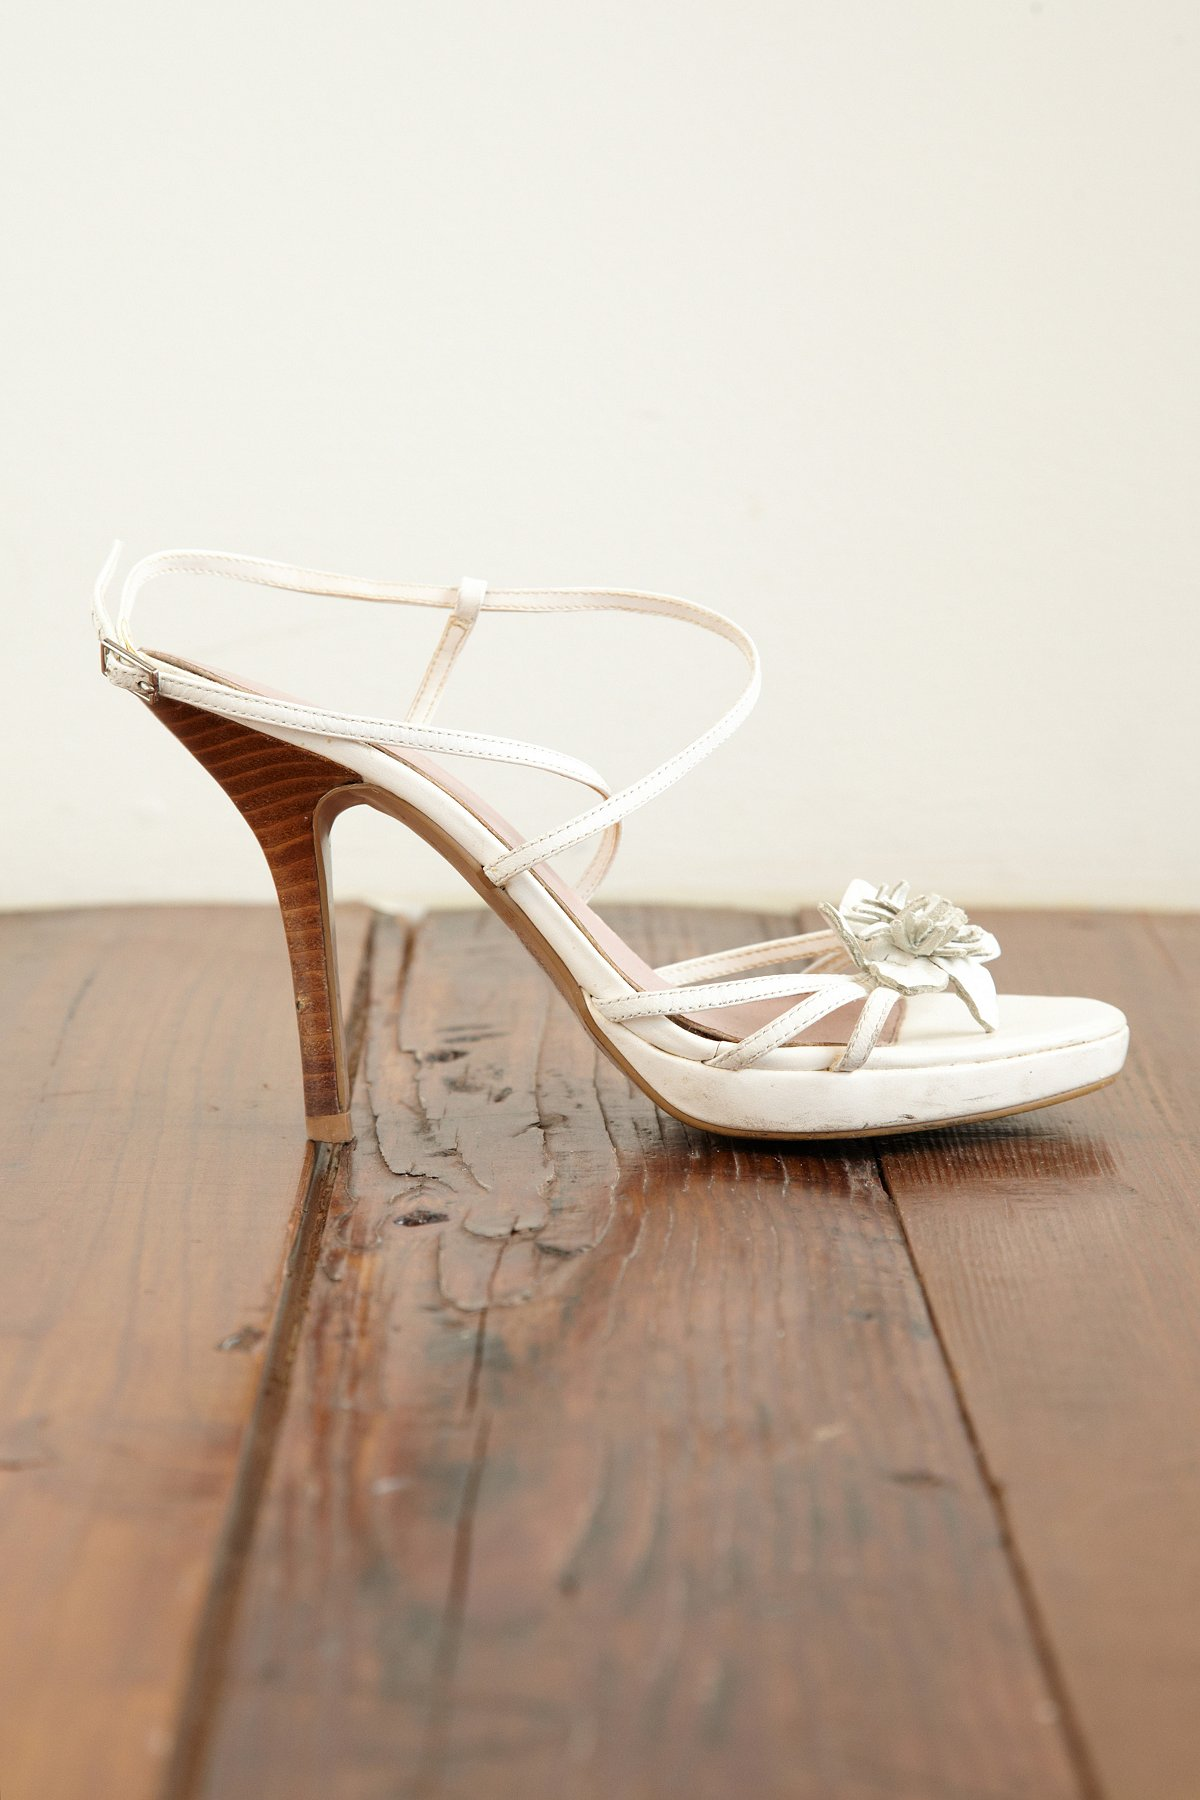 Vintage Pumps With Flower Detail